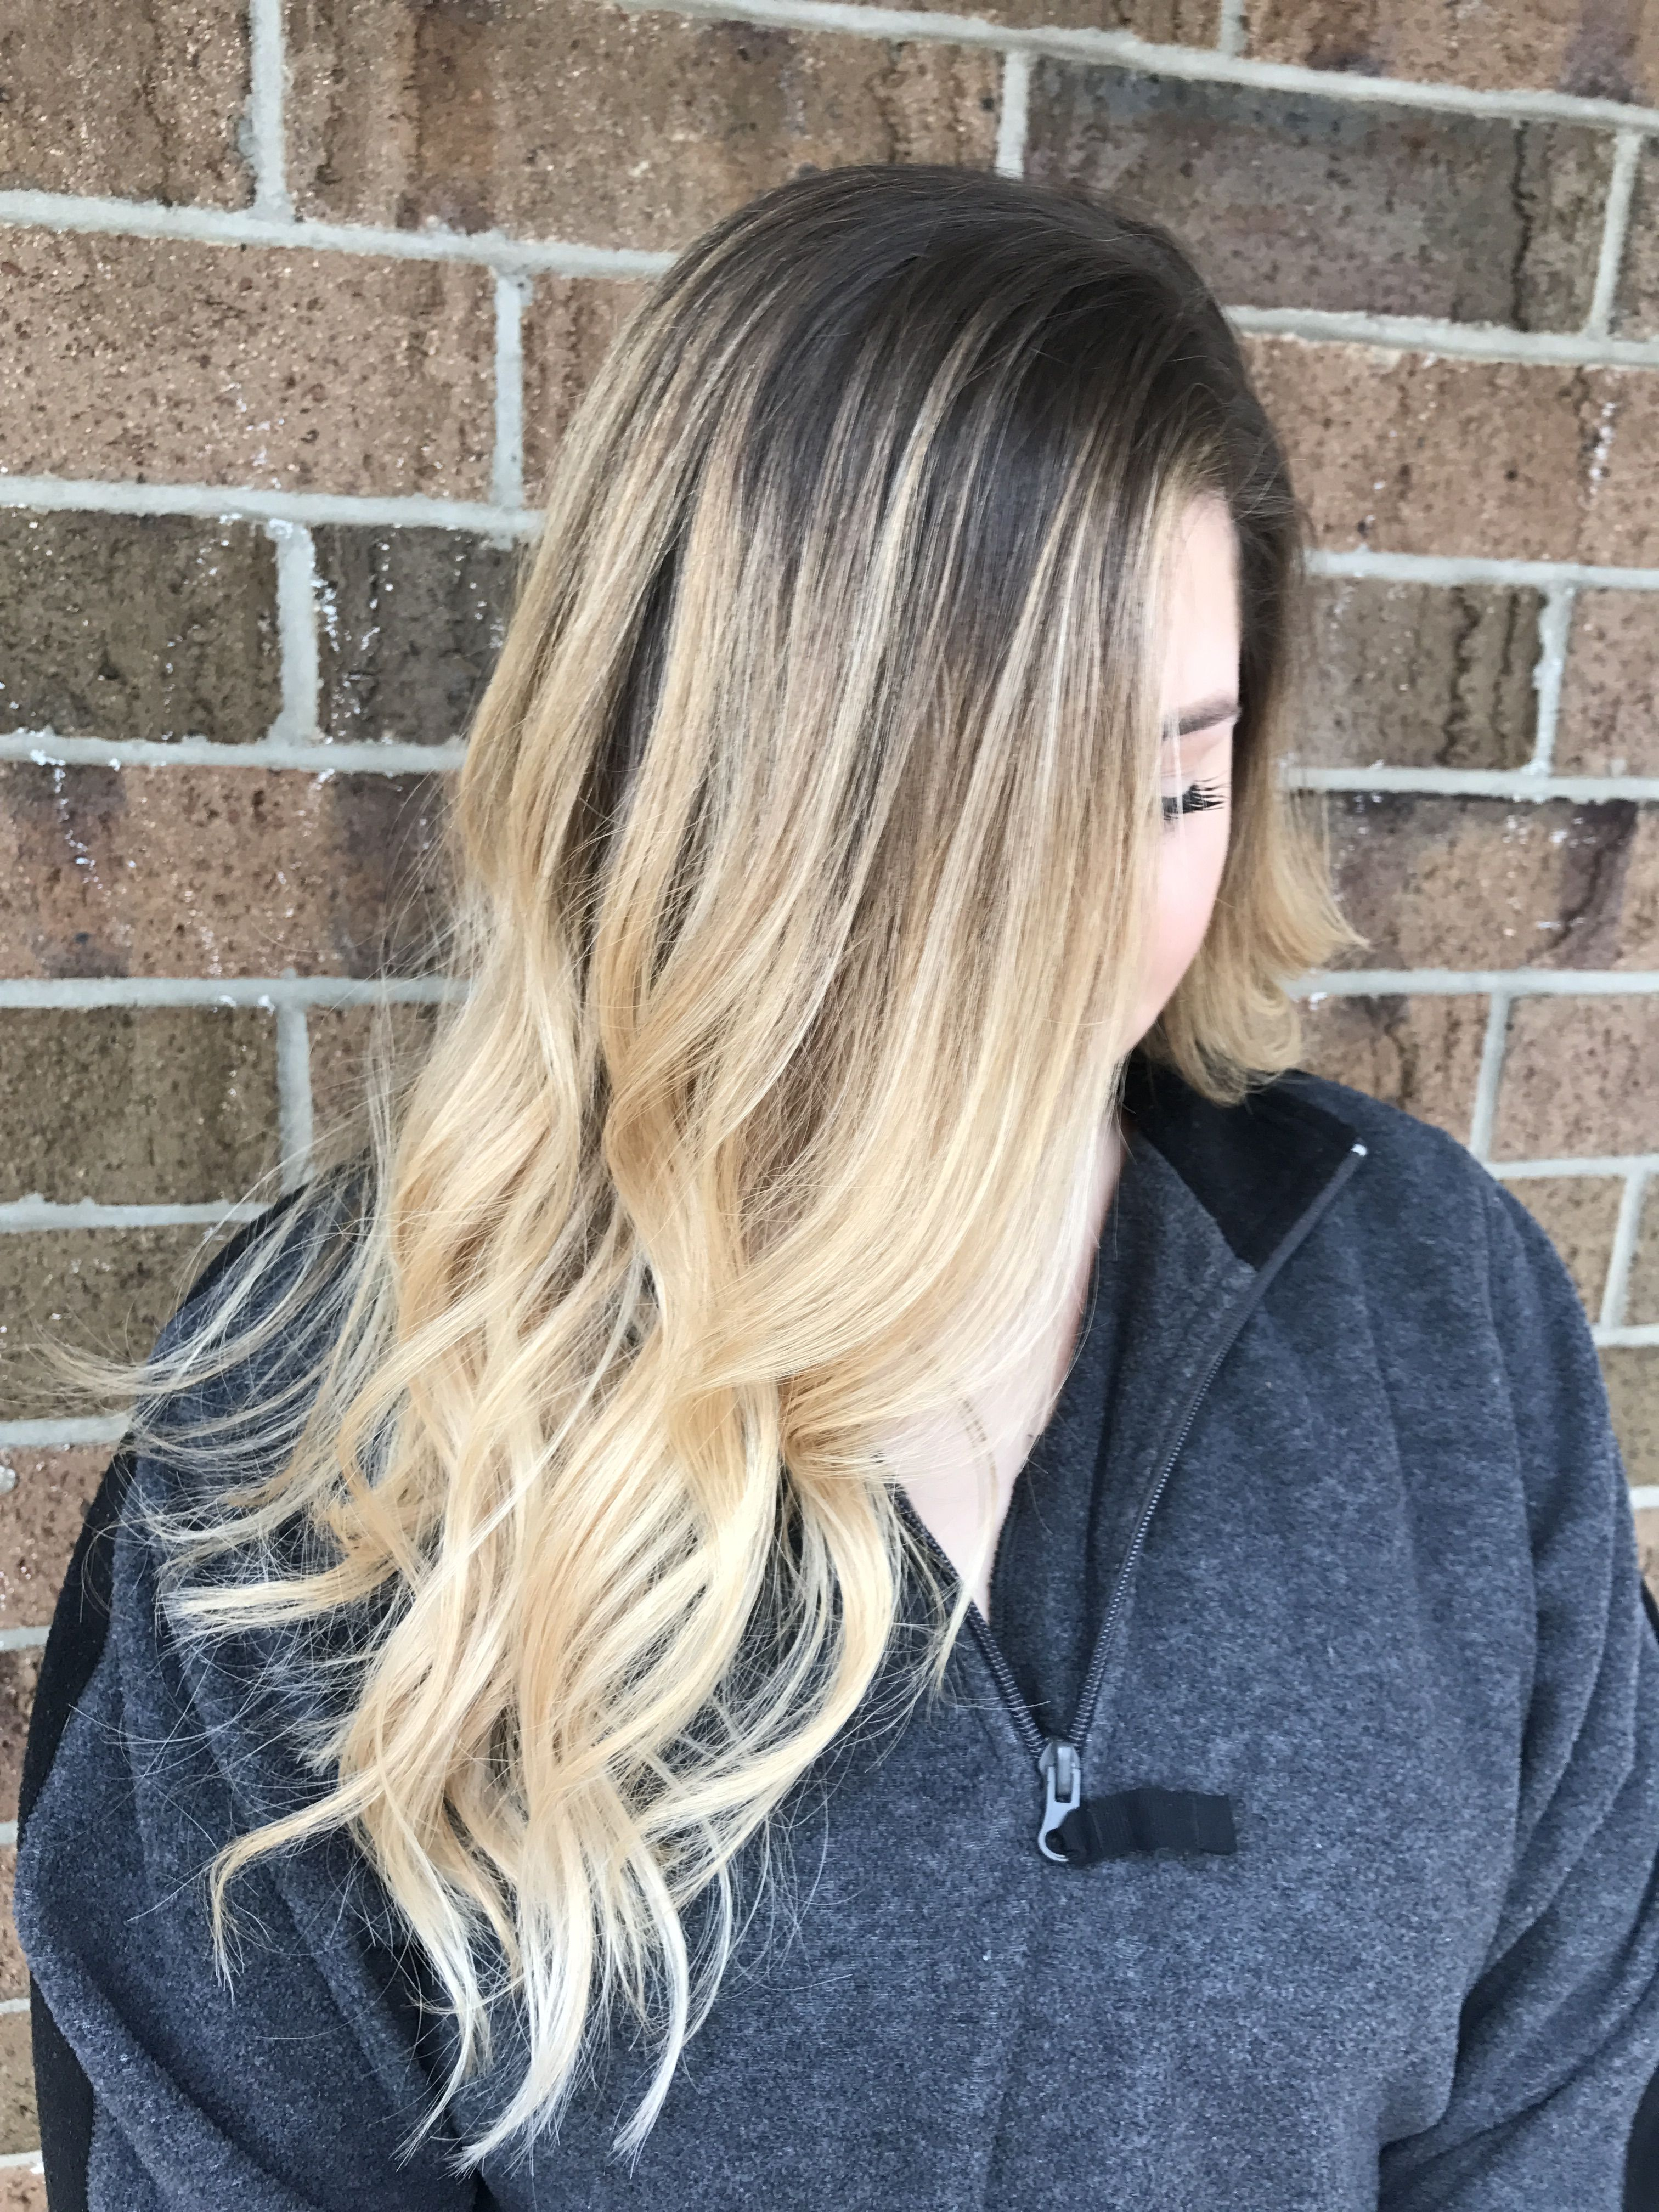 Blonde Balayage Easy Grow Out Color With Natural Root Color Blond